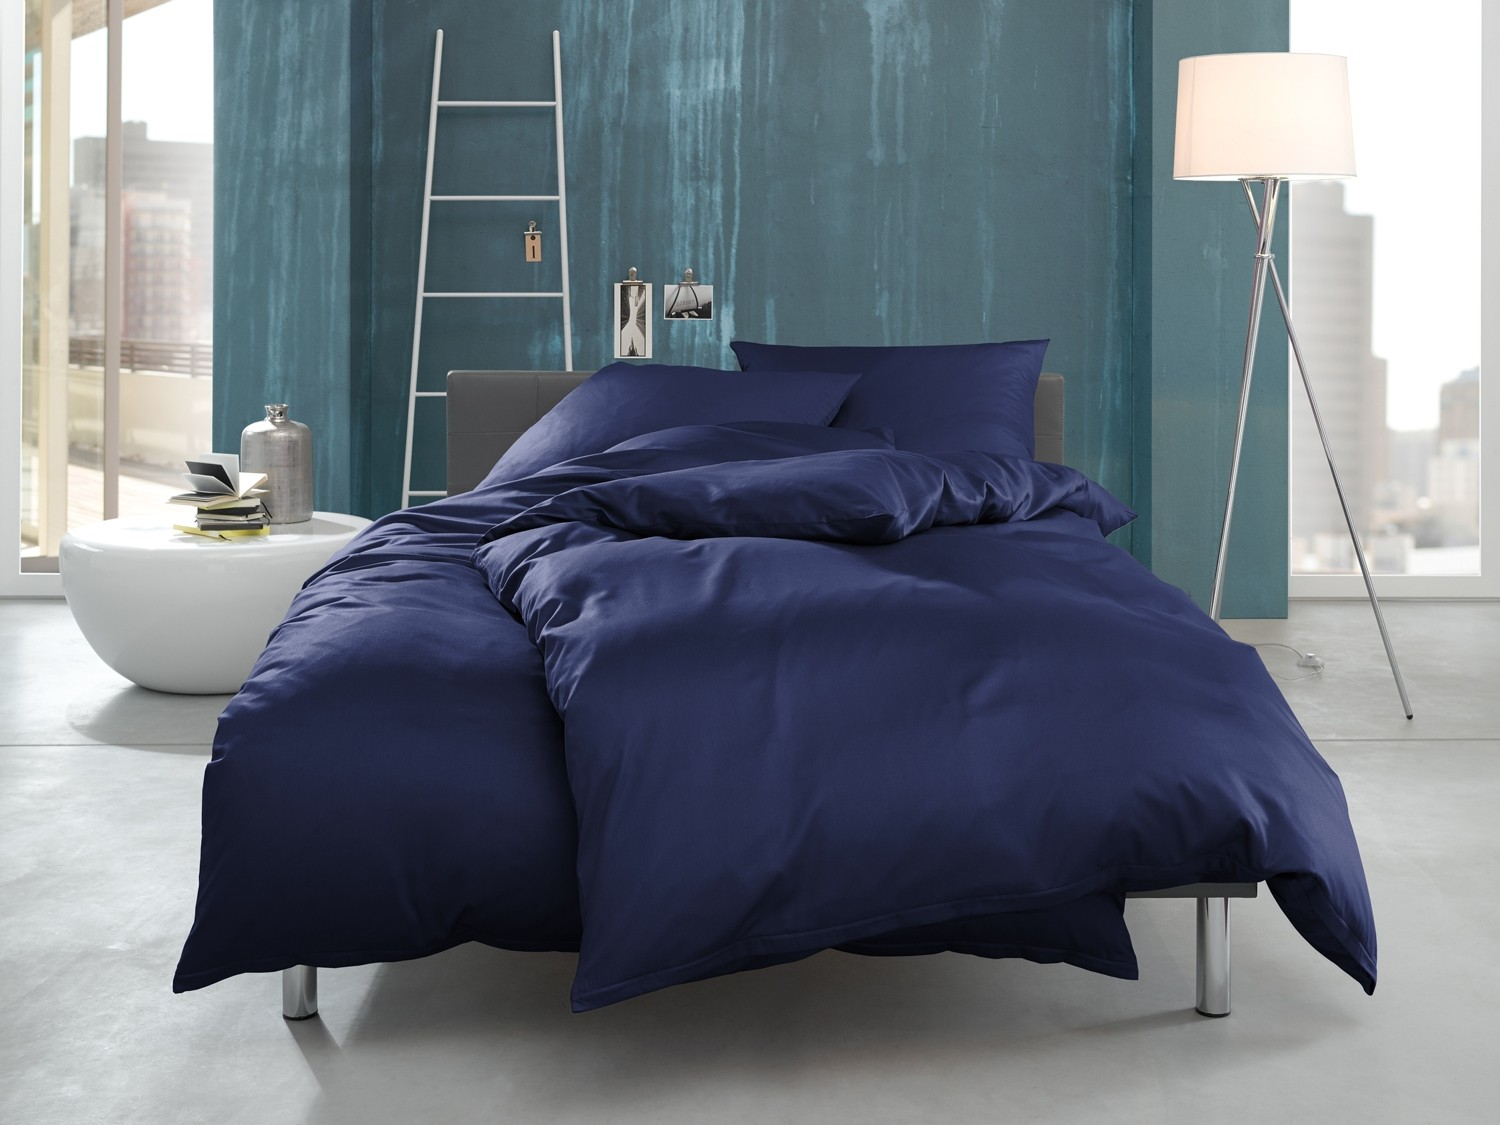 interlock jersey bettw sche blau bettwaesche mit stil. Black Bedroom Furniture Sets. Home Design Ideas